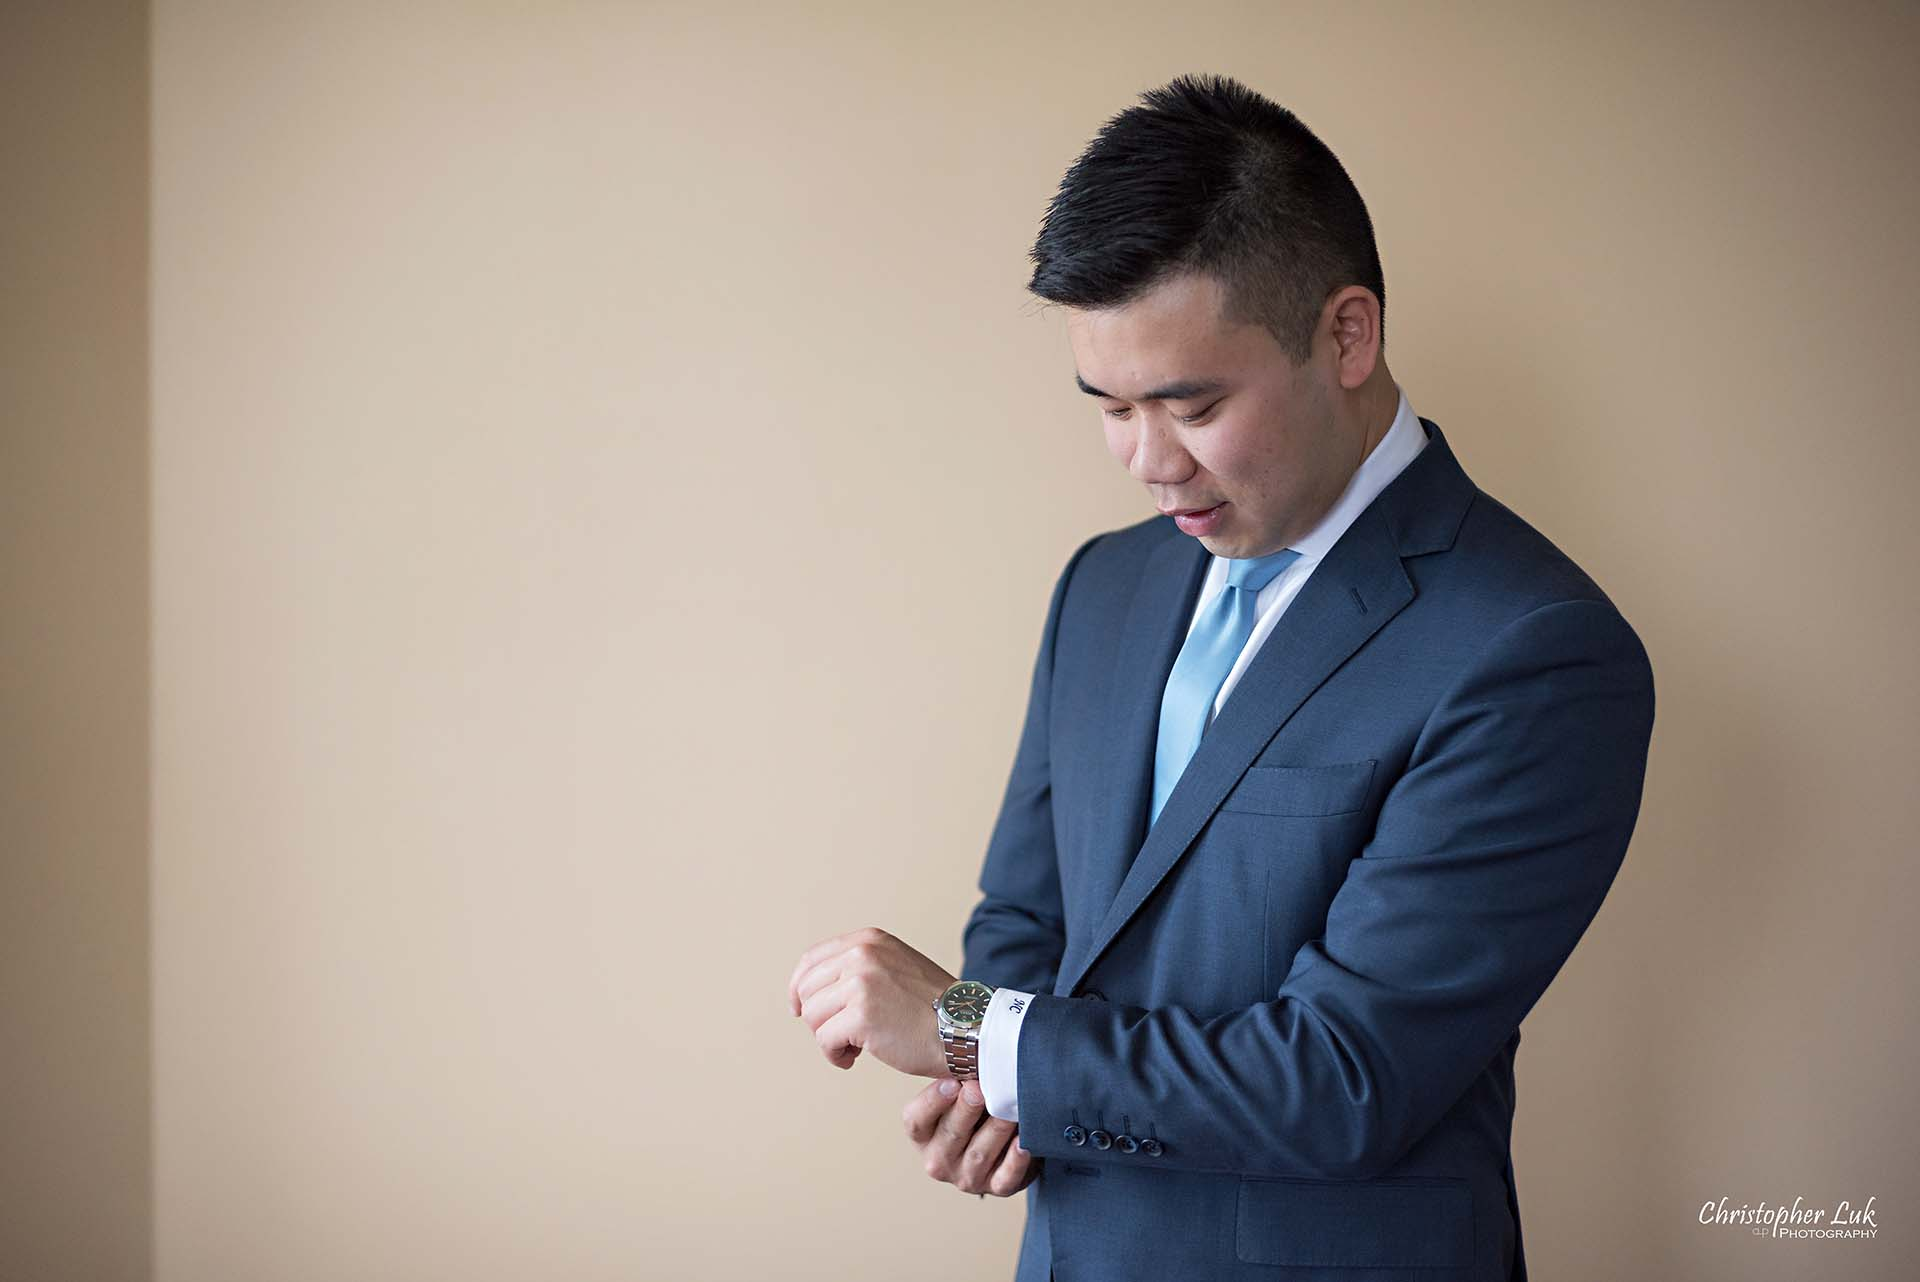 Christopher Luk Toronto Wedding Photographer Groom Getting Ready Preparations Natural Candid Photojournalistic Wingmen Suits Custom Made to Measure Navy Blue Suit Rolex Watch